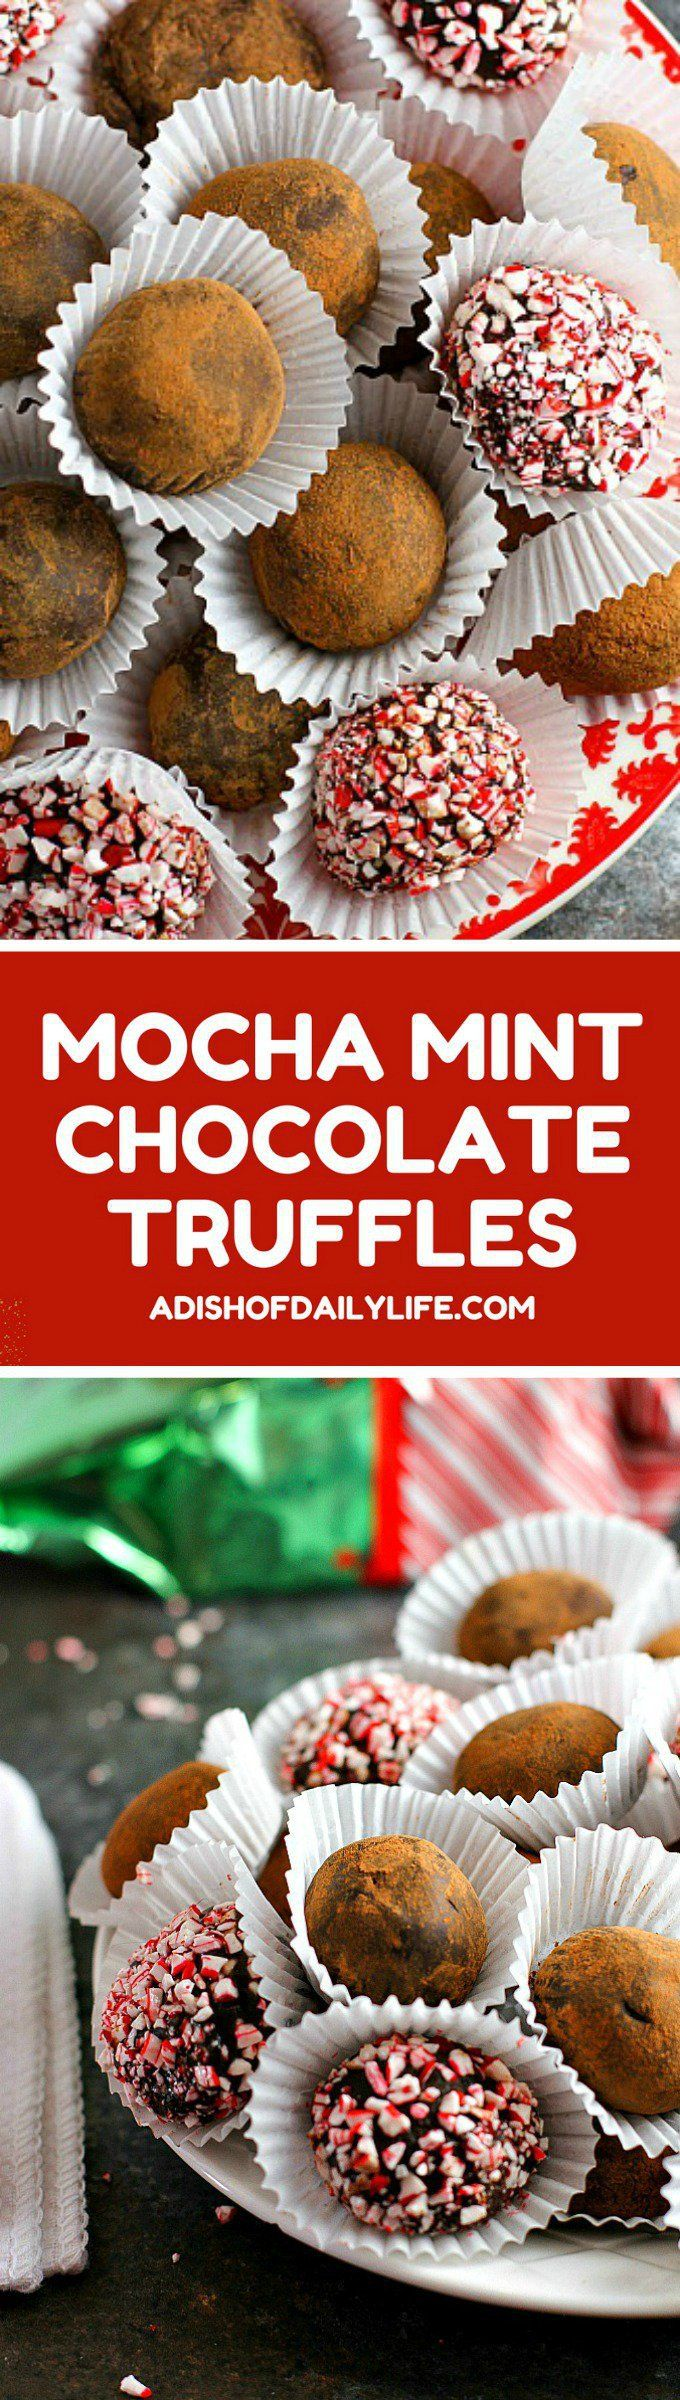 Rich and creamy, these Mocha Mint Chocolate Truffles are an easy-to-make decadent treat for the holidays! They make a wonderful hostess gift as well!  #ad #NewEnglandCoffee #YouAreExtraordinary